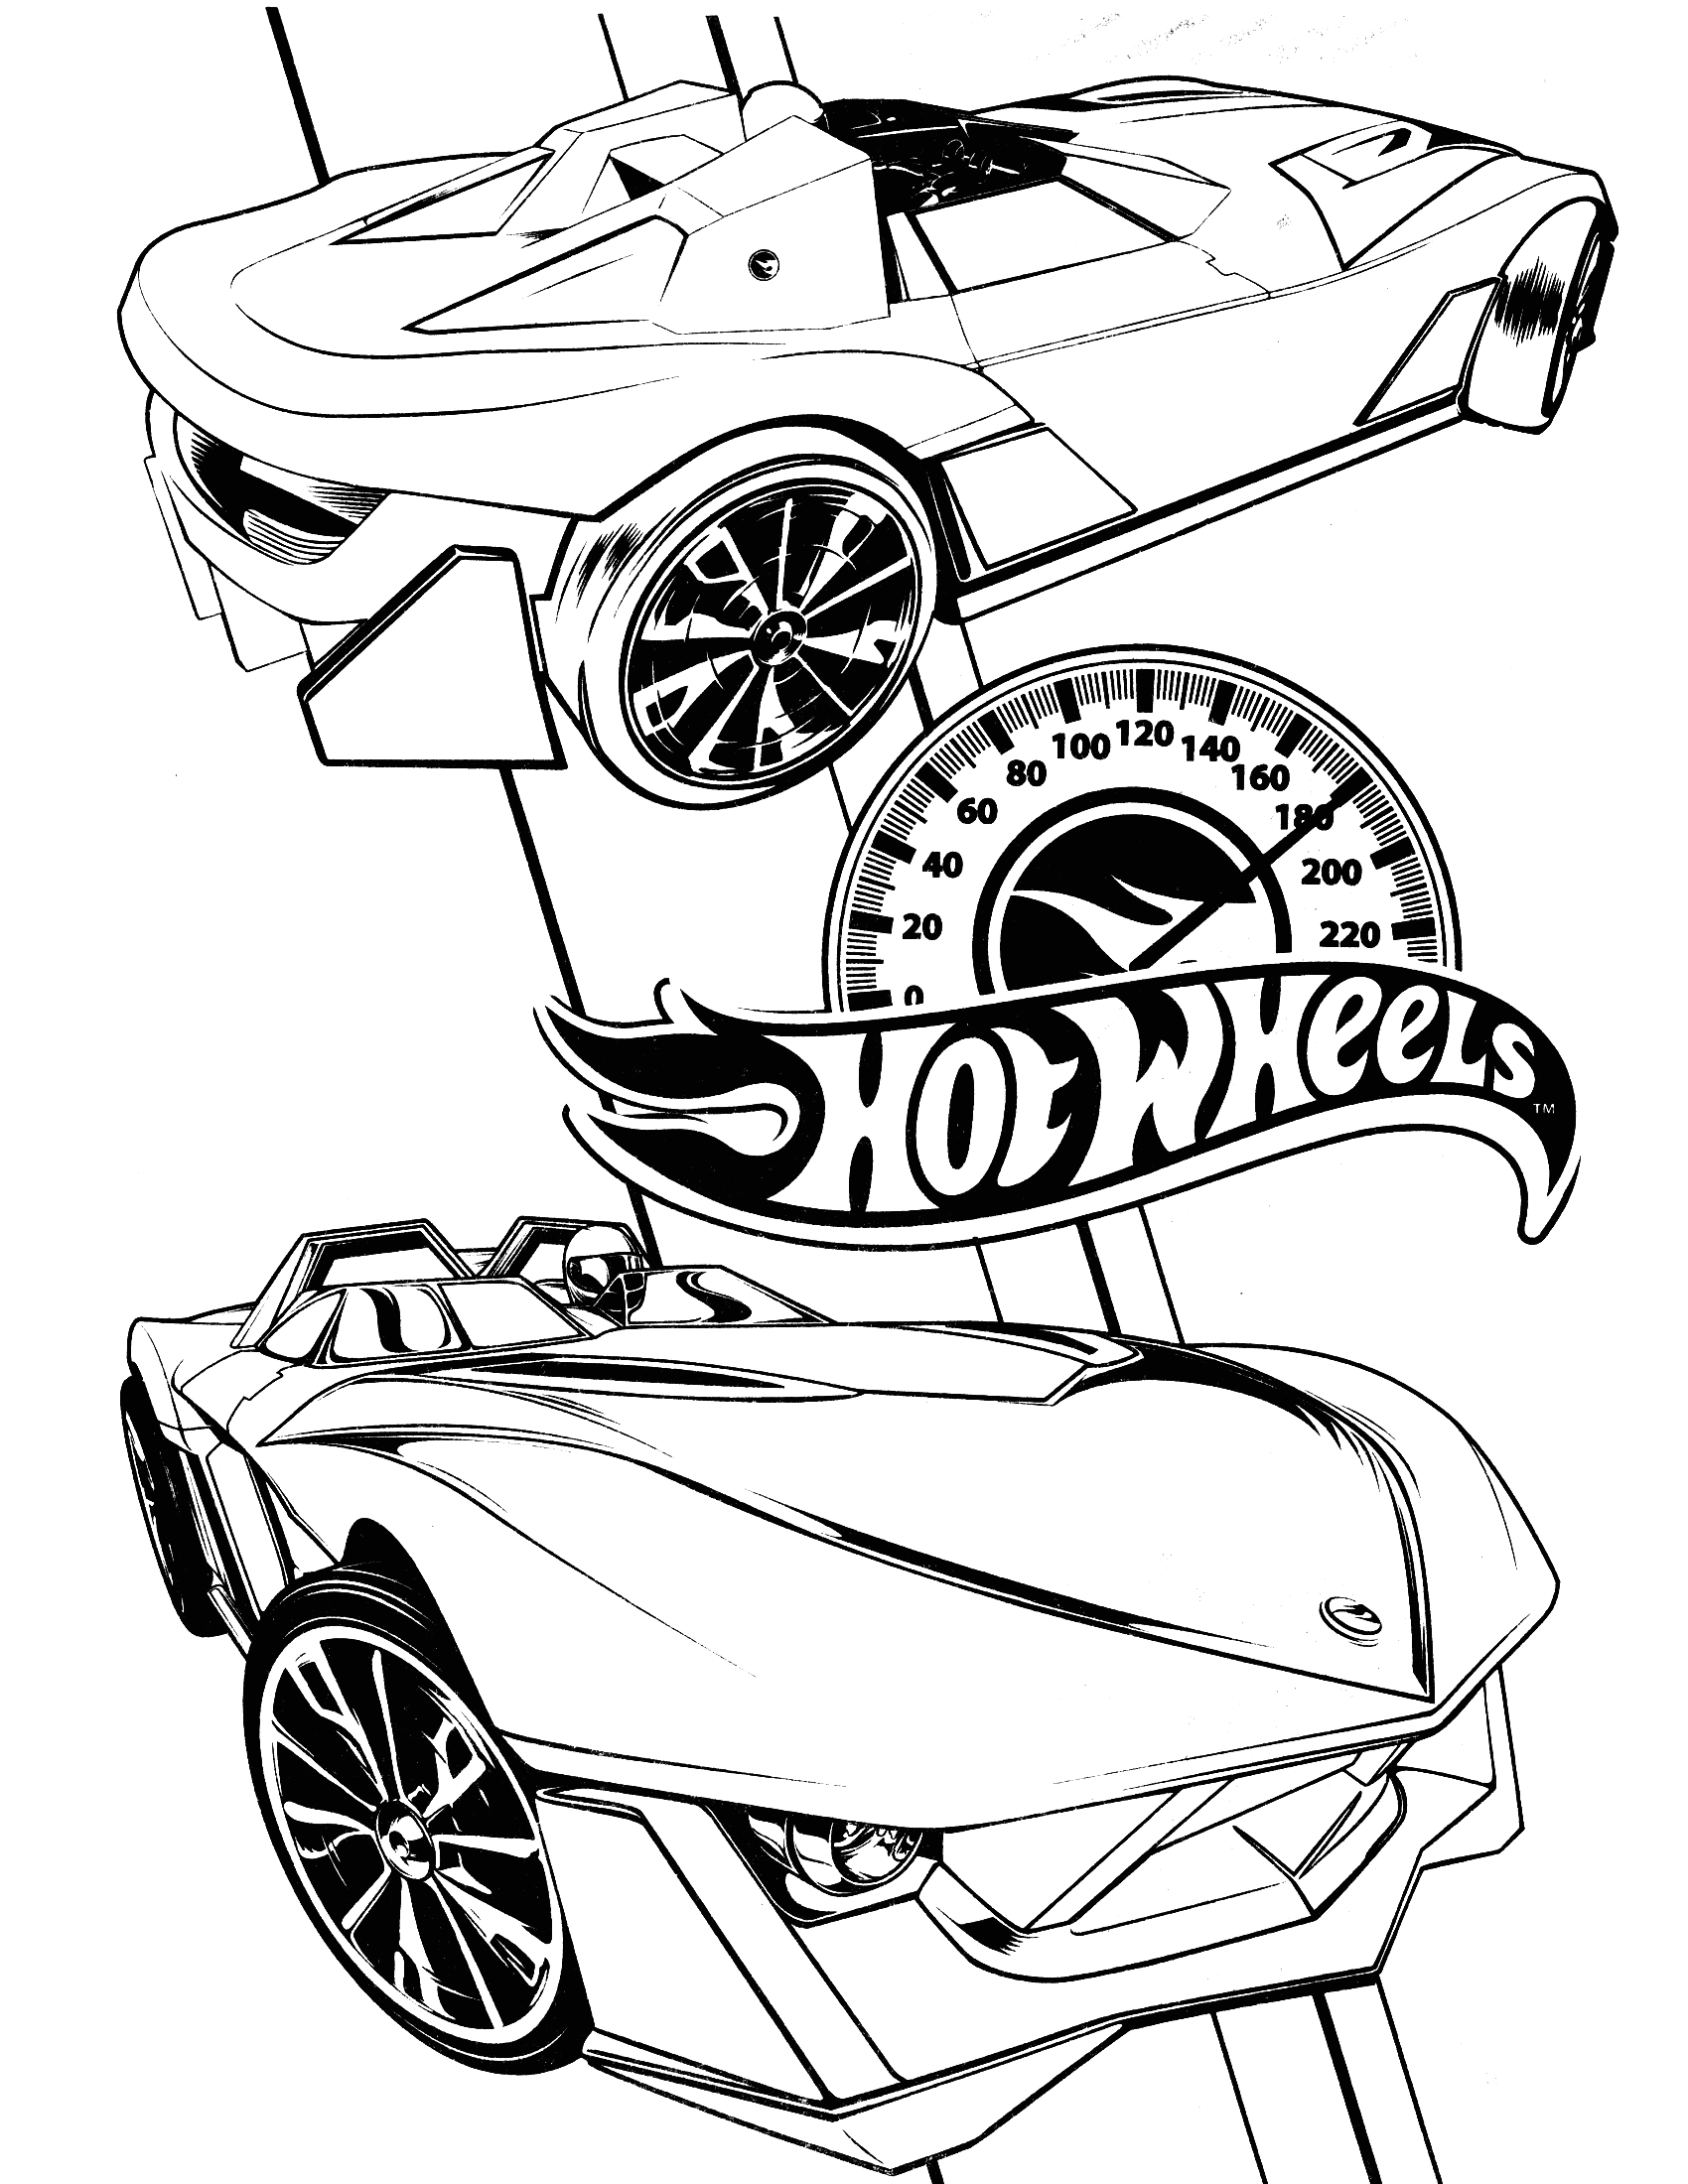 Free Hot Wheels Coloring Pages to Print Free Printable Hot Wheels Coloring Pages for Kids